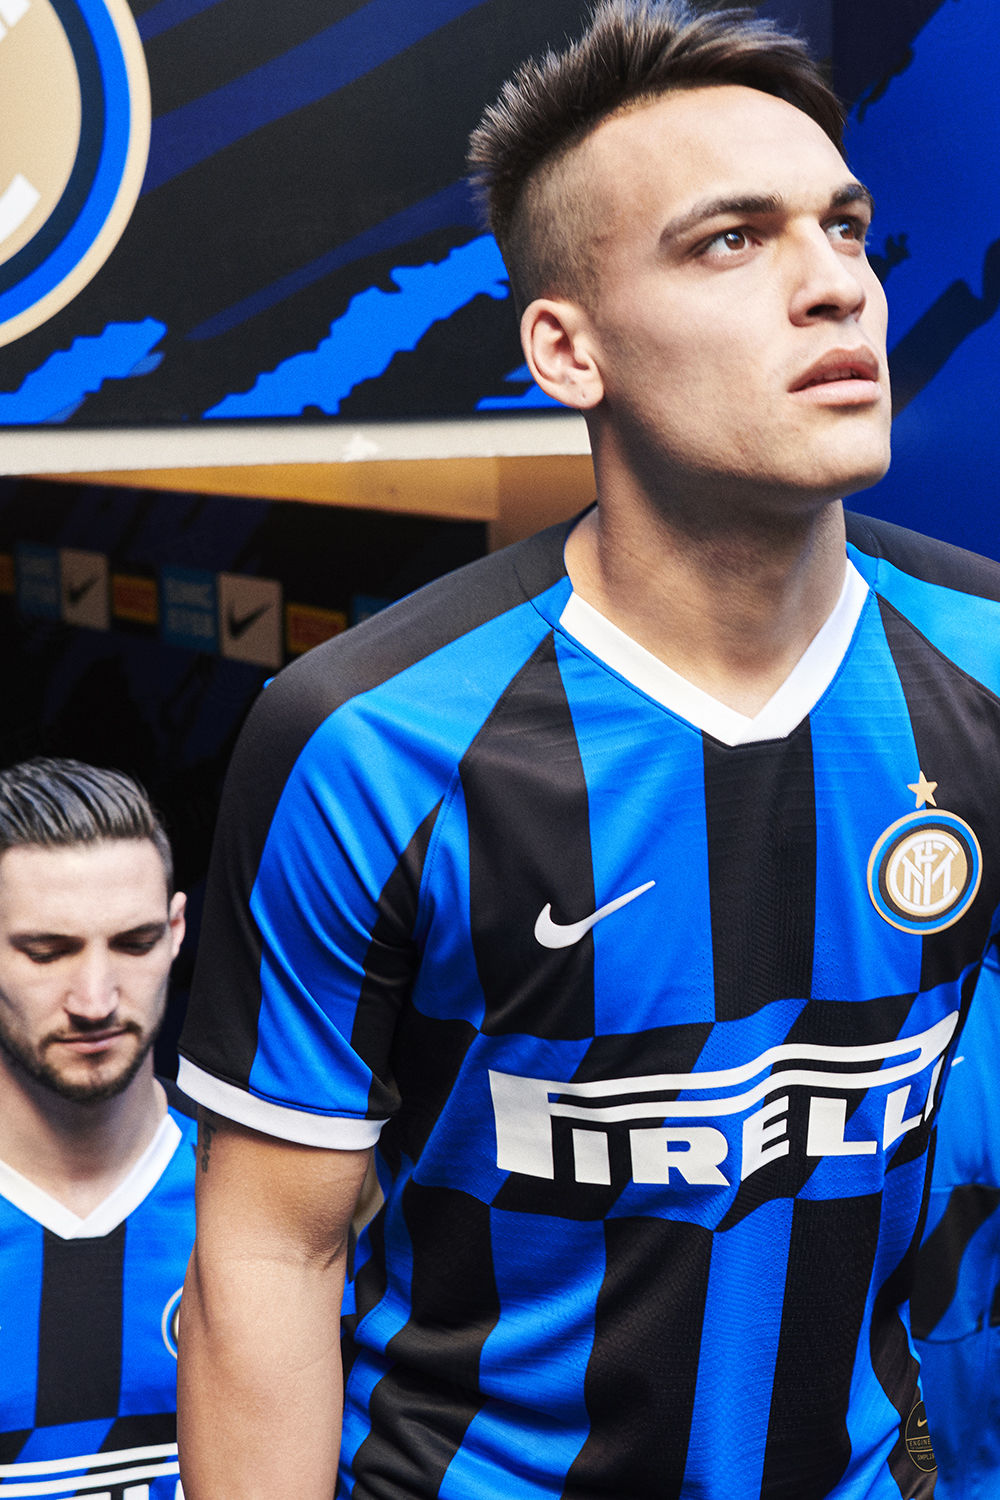 Break lines, make dreams: seragam Nerazzurri terbaru